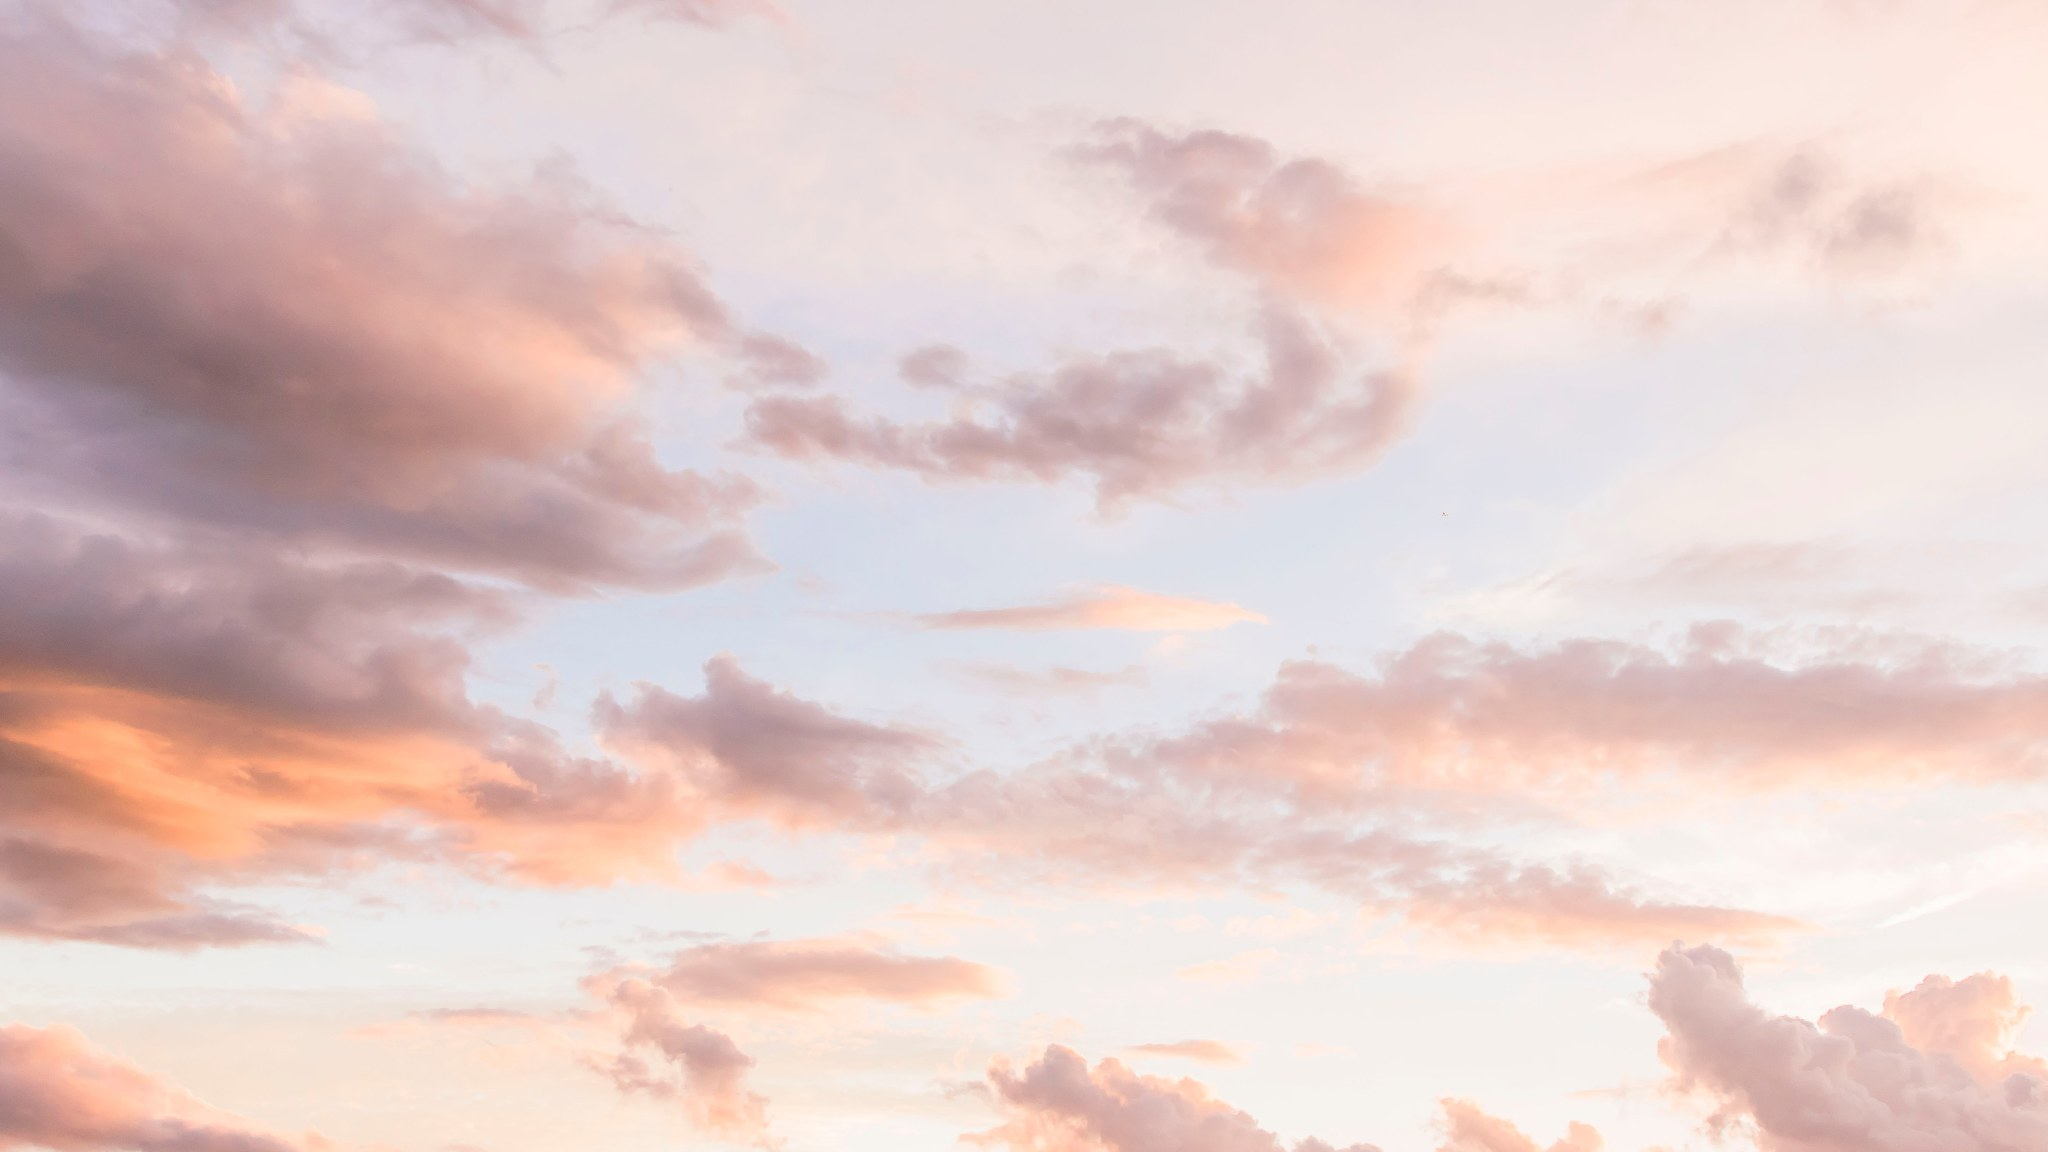 Pastel Wallpaper White Cloud Formations Wallpaper For